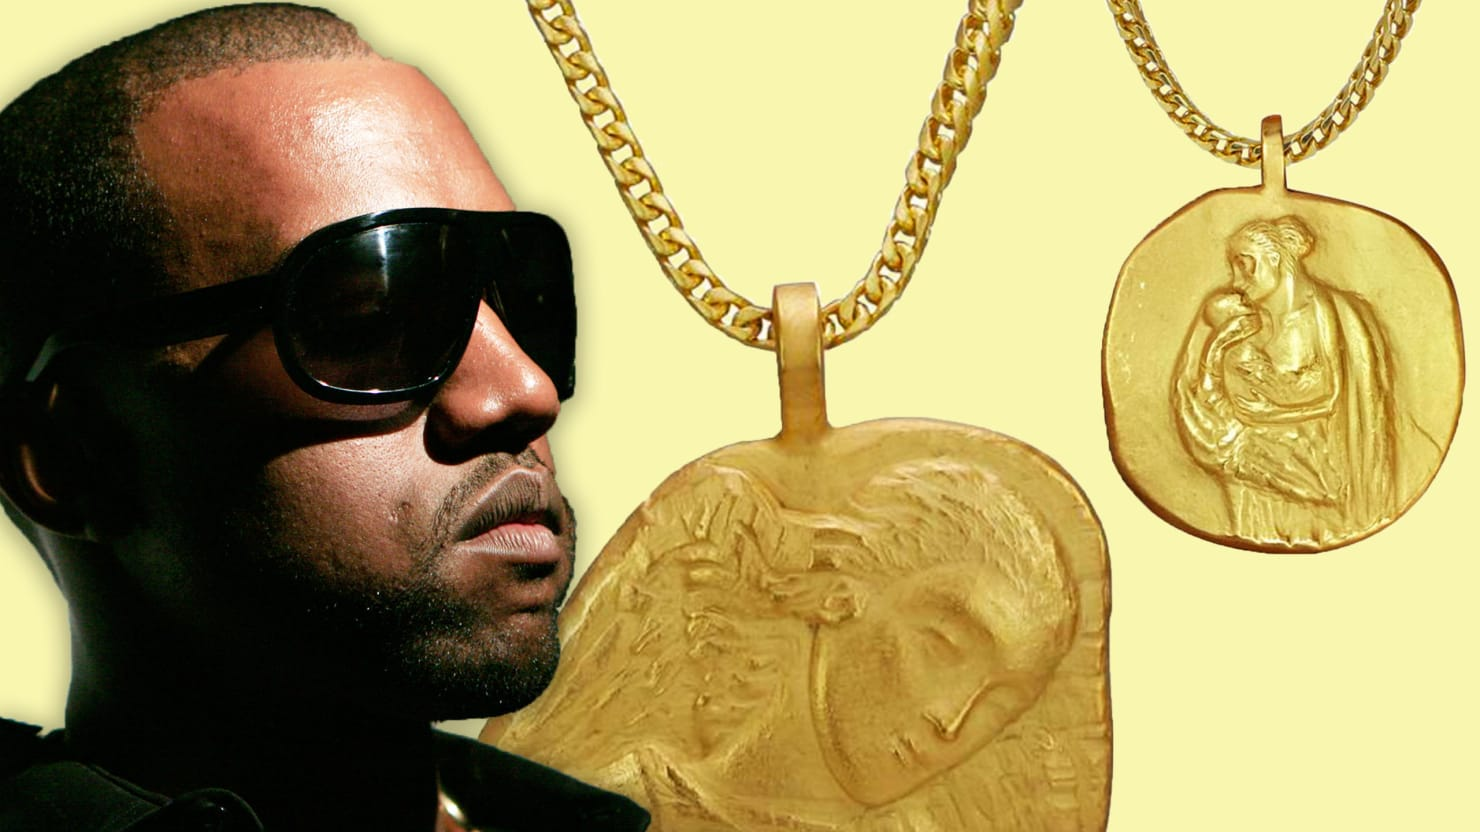 And Now Kanye Wests A Jewelry Designer